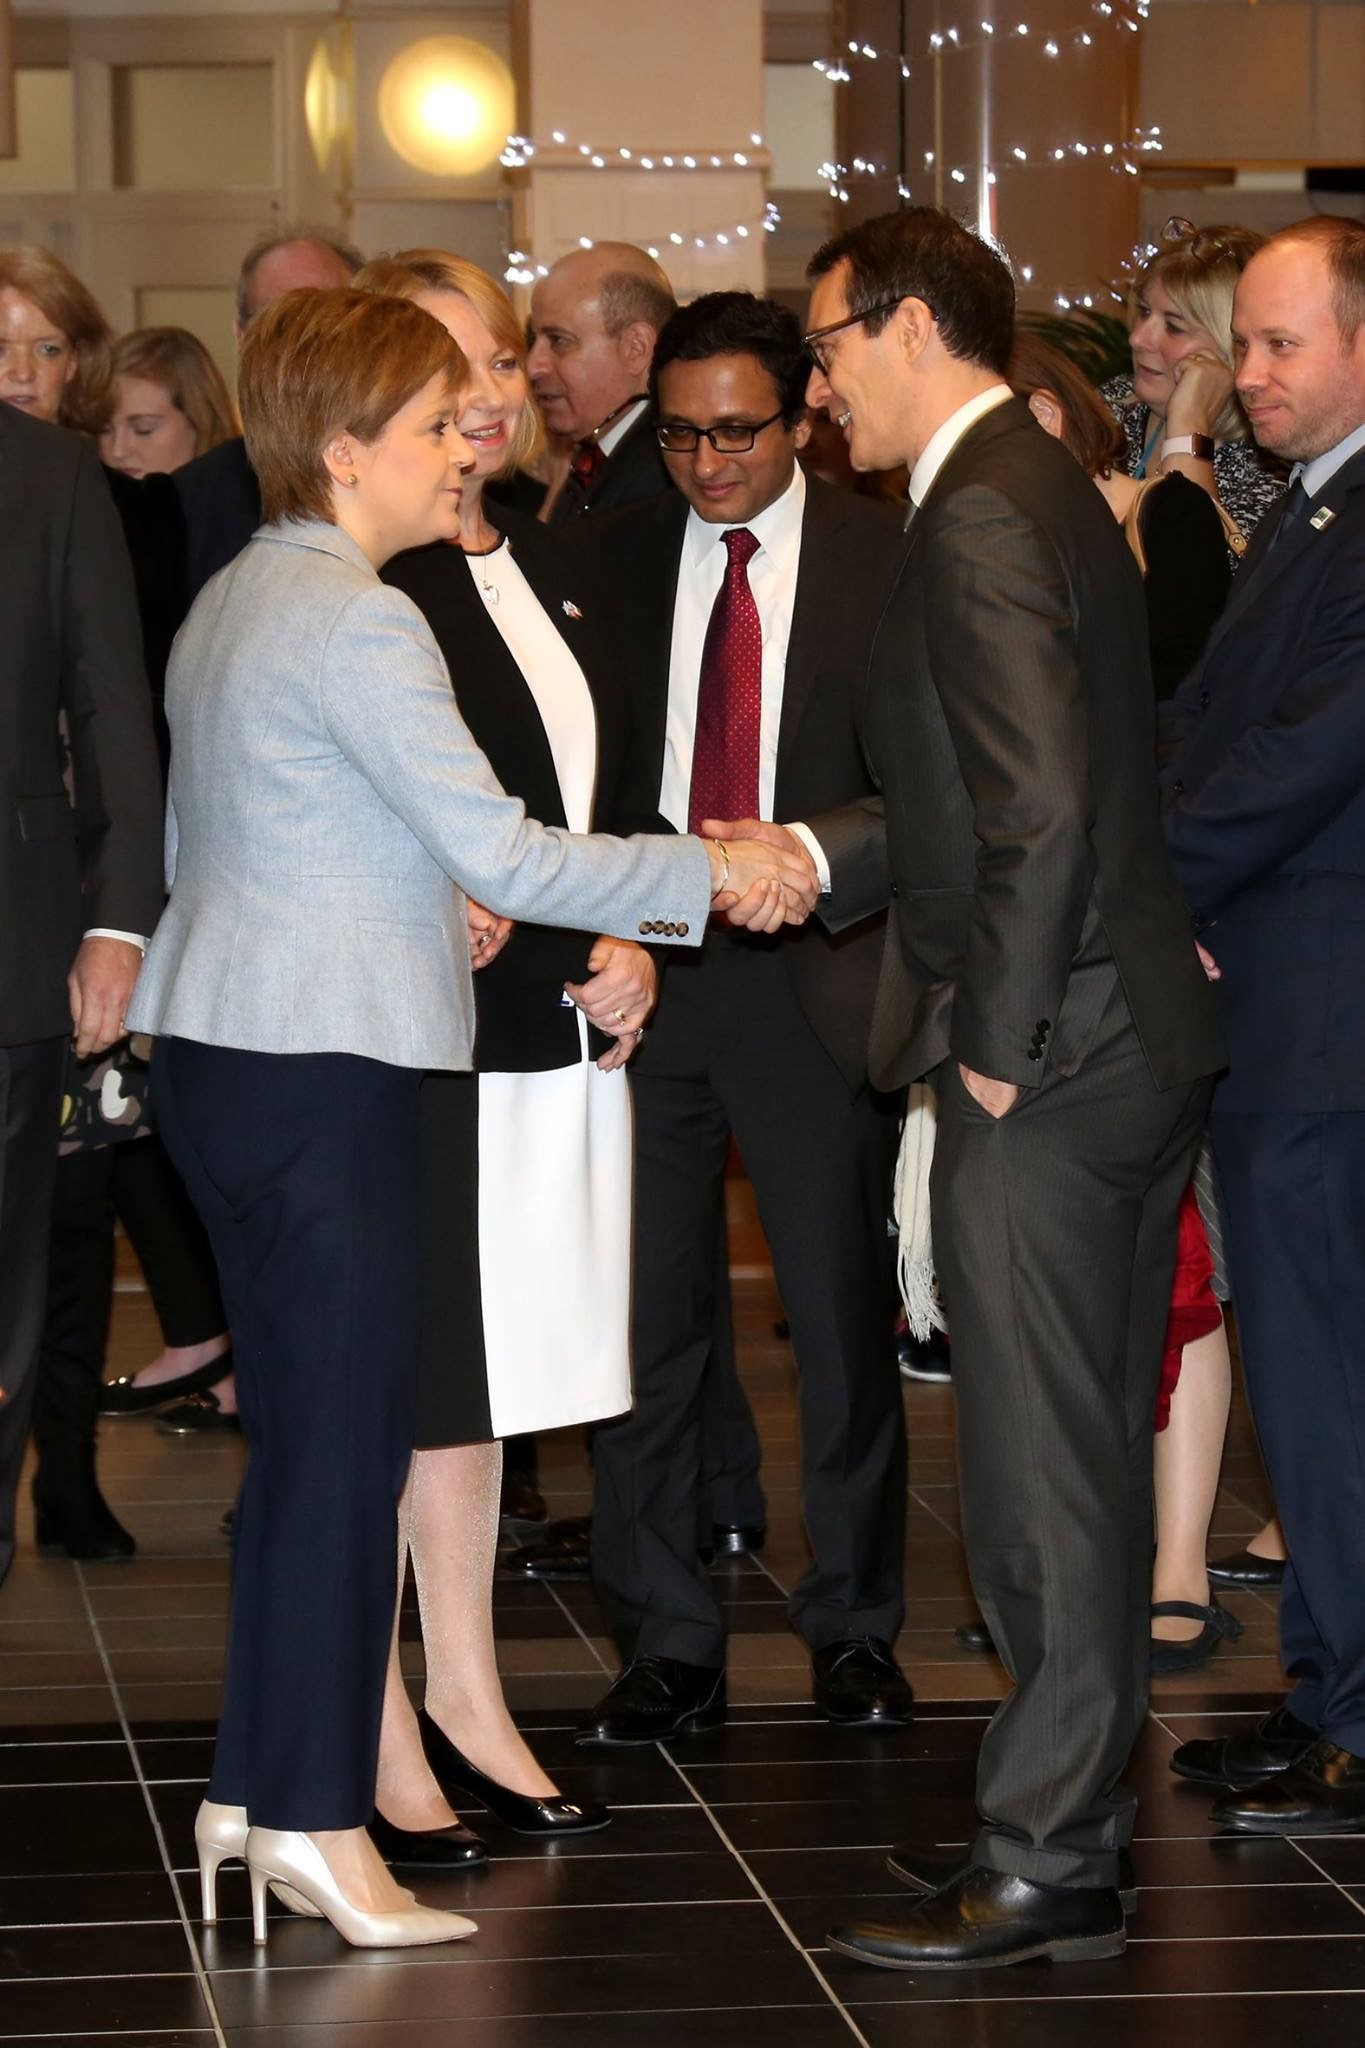 Damon Scott, CEO, Dunbartonshire Chamber of Commerce Meets First Minister, Nicola Sturgeon